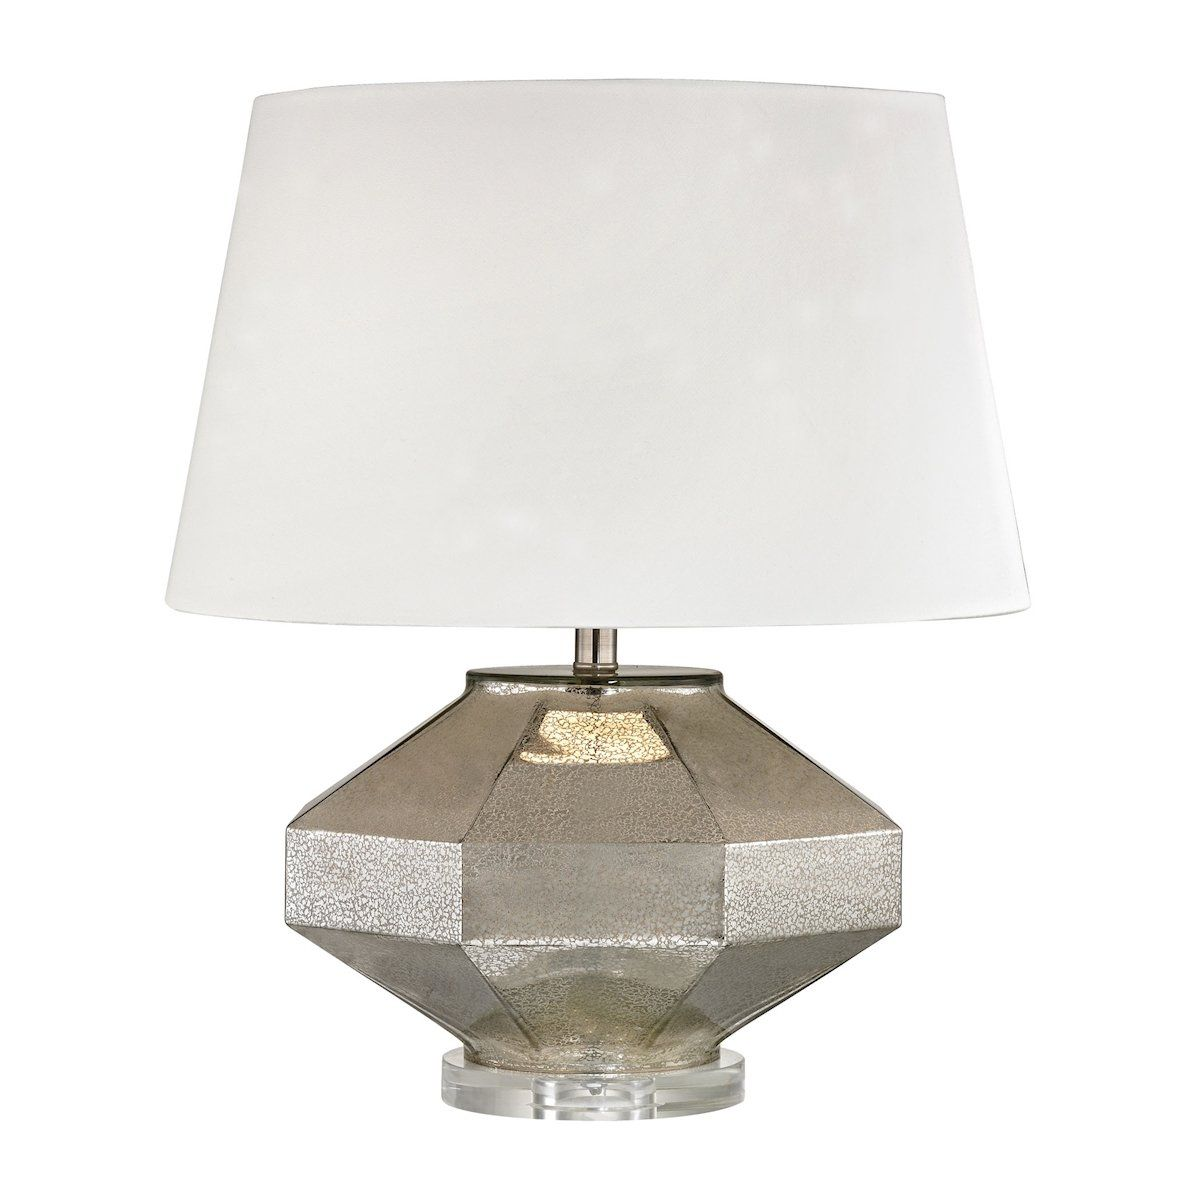 Angular blown glass table lamp in silver by dimond lighting angular blown glass table lamp in silver by dimond lighting mozeypictures Gallery